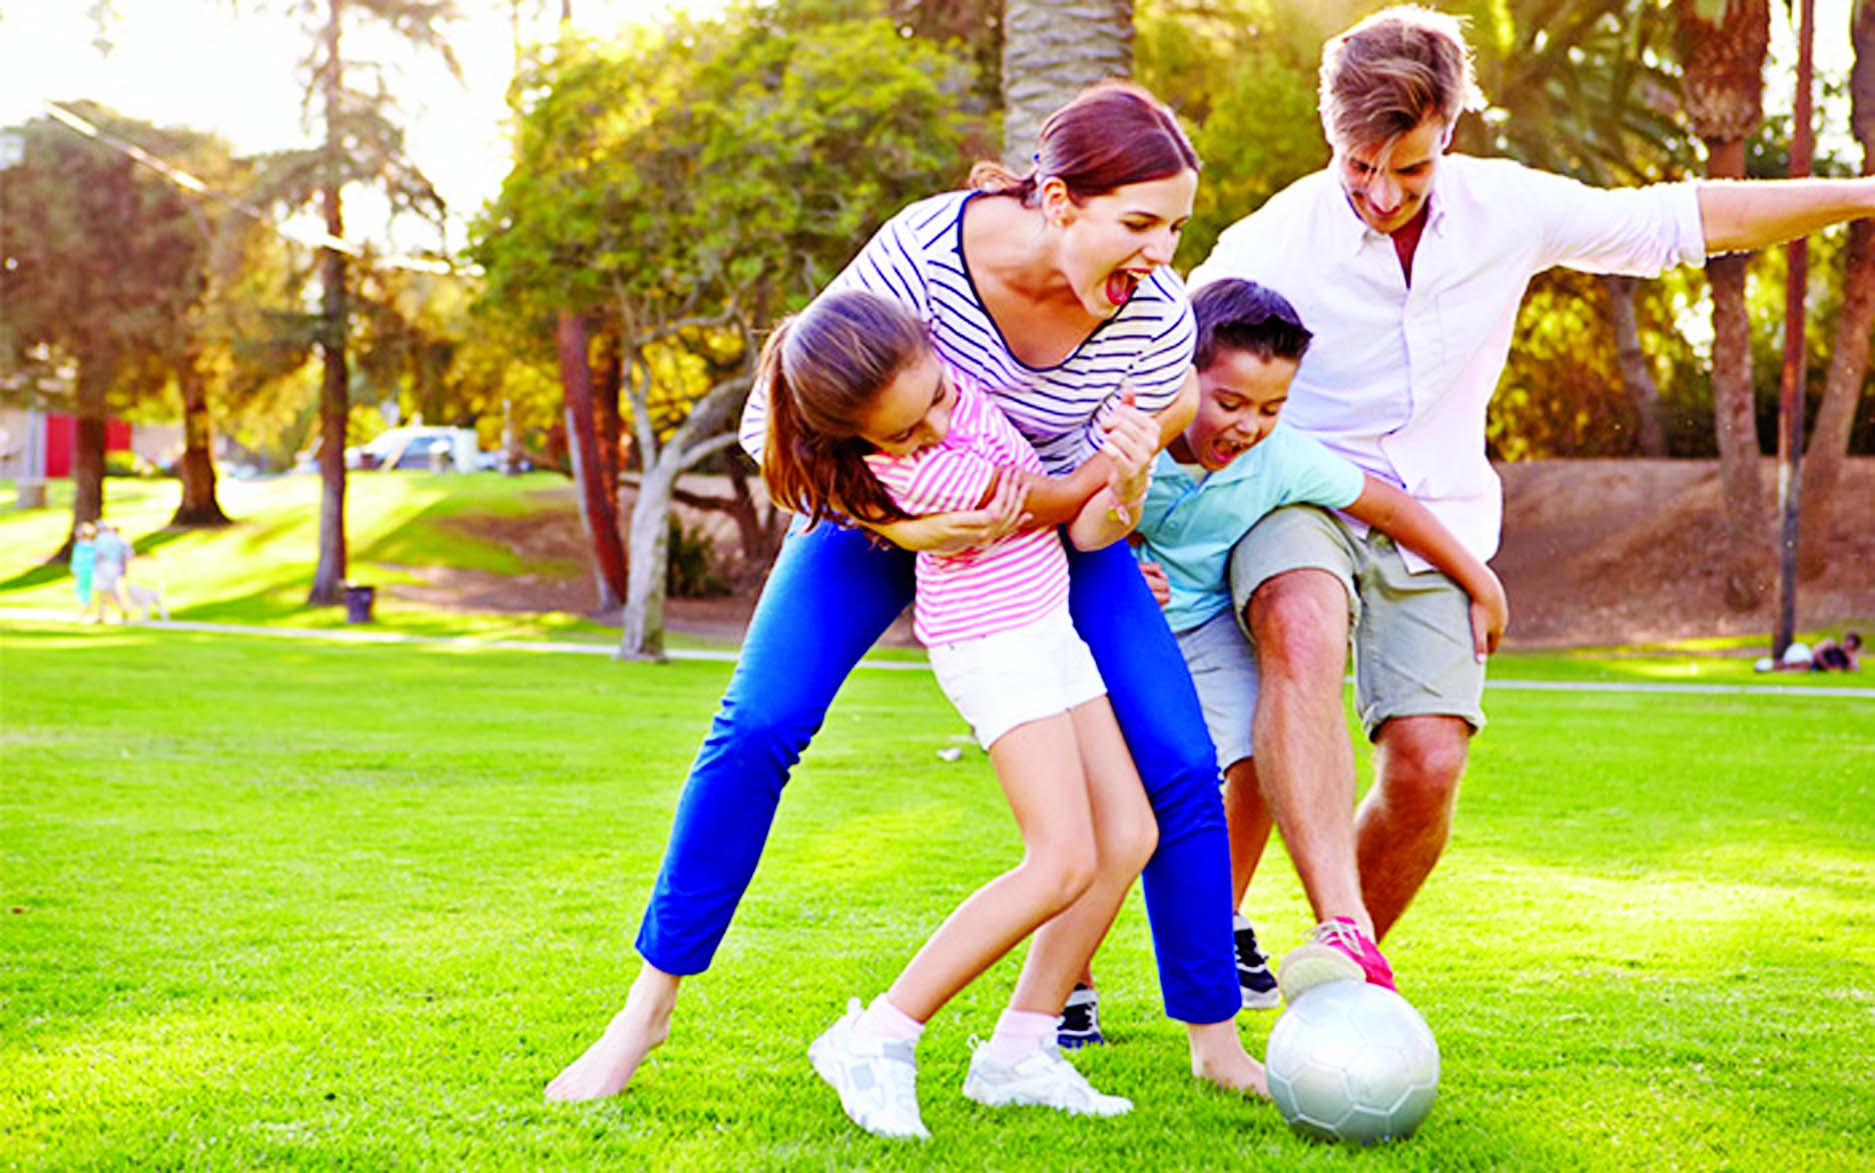 Just 10 minutes of play a day  can keep  cardiometabolic risk at bay